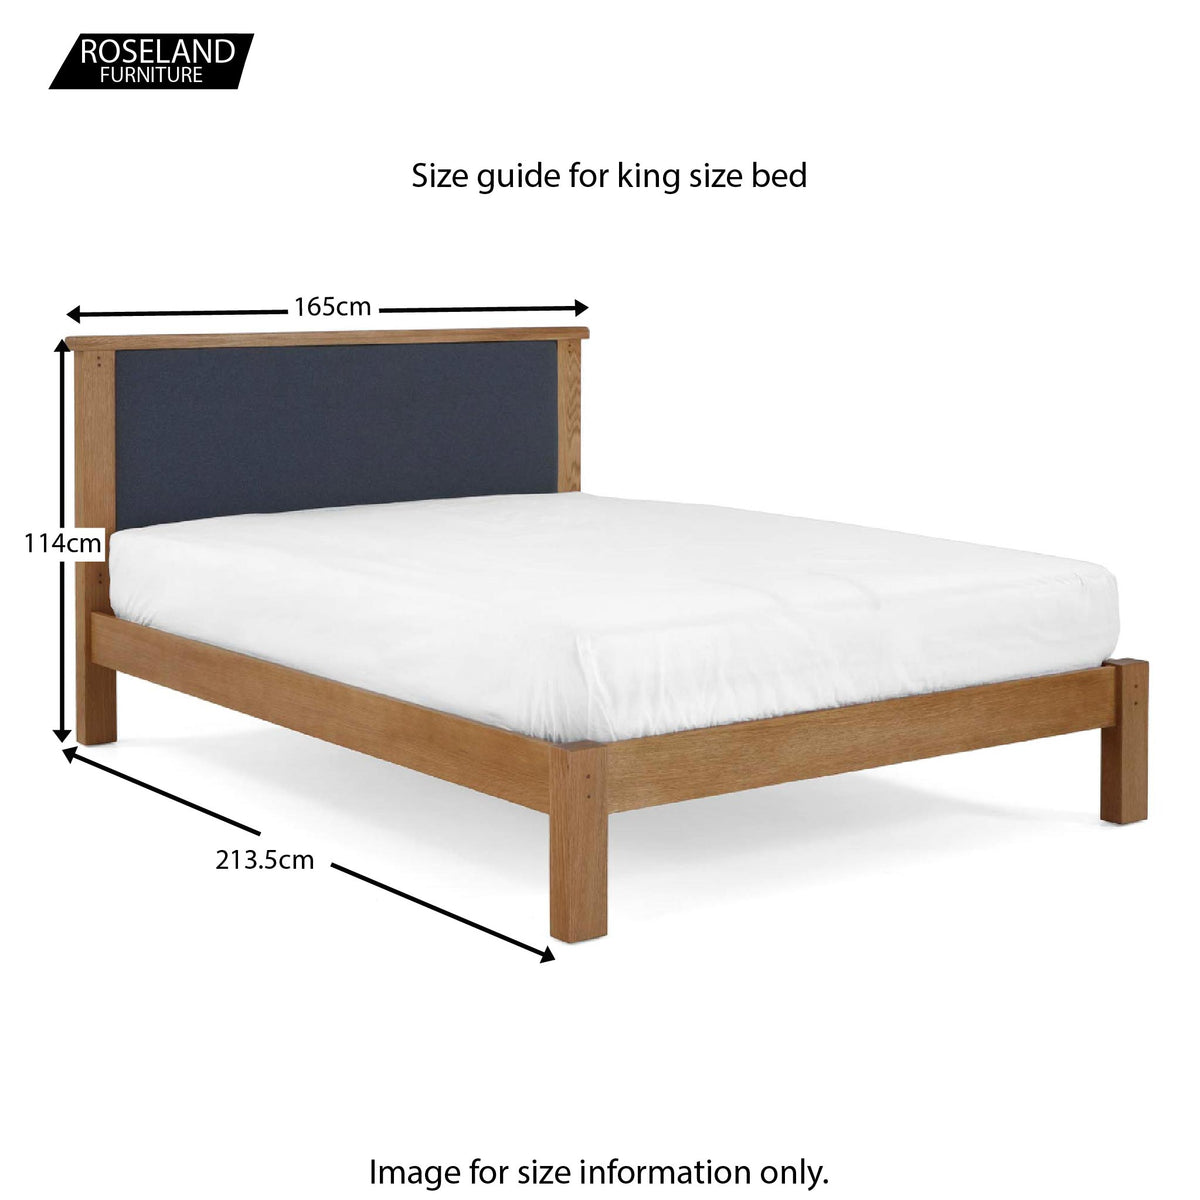 Broadway 5ft King Size Bed Frame - Size Guide